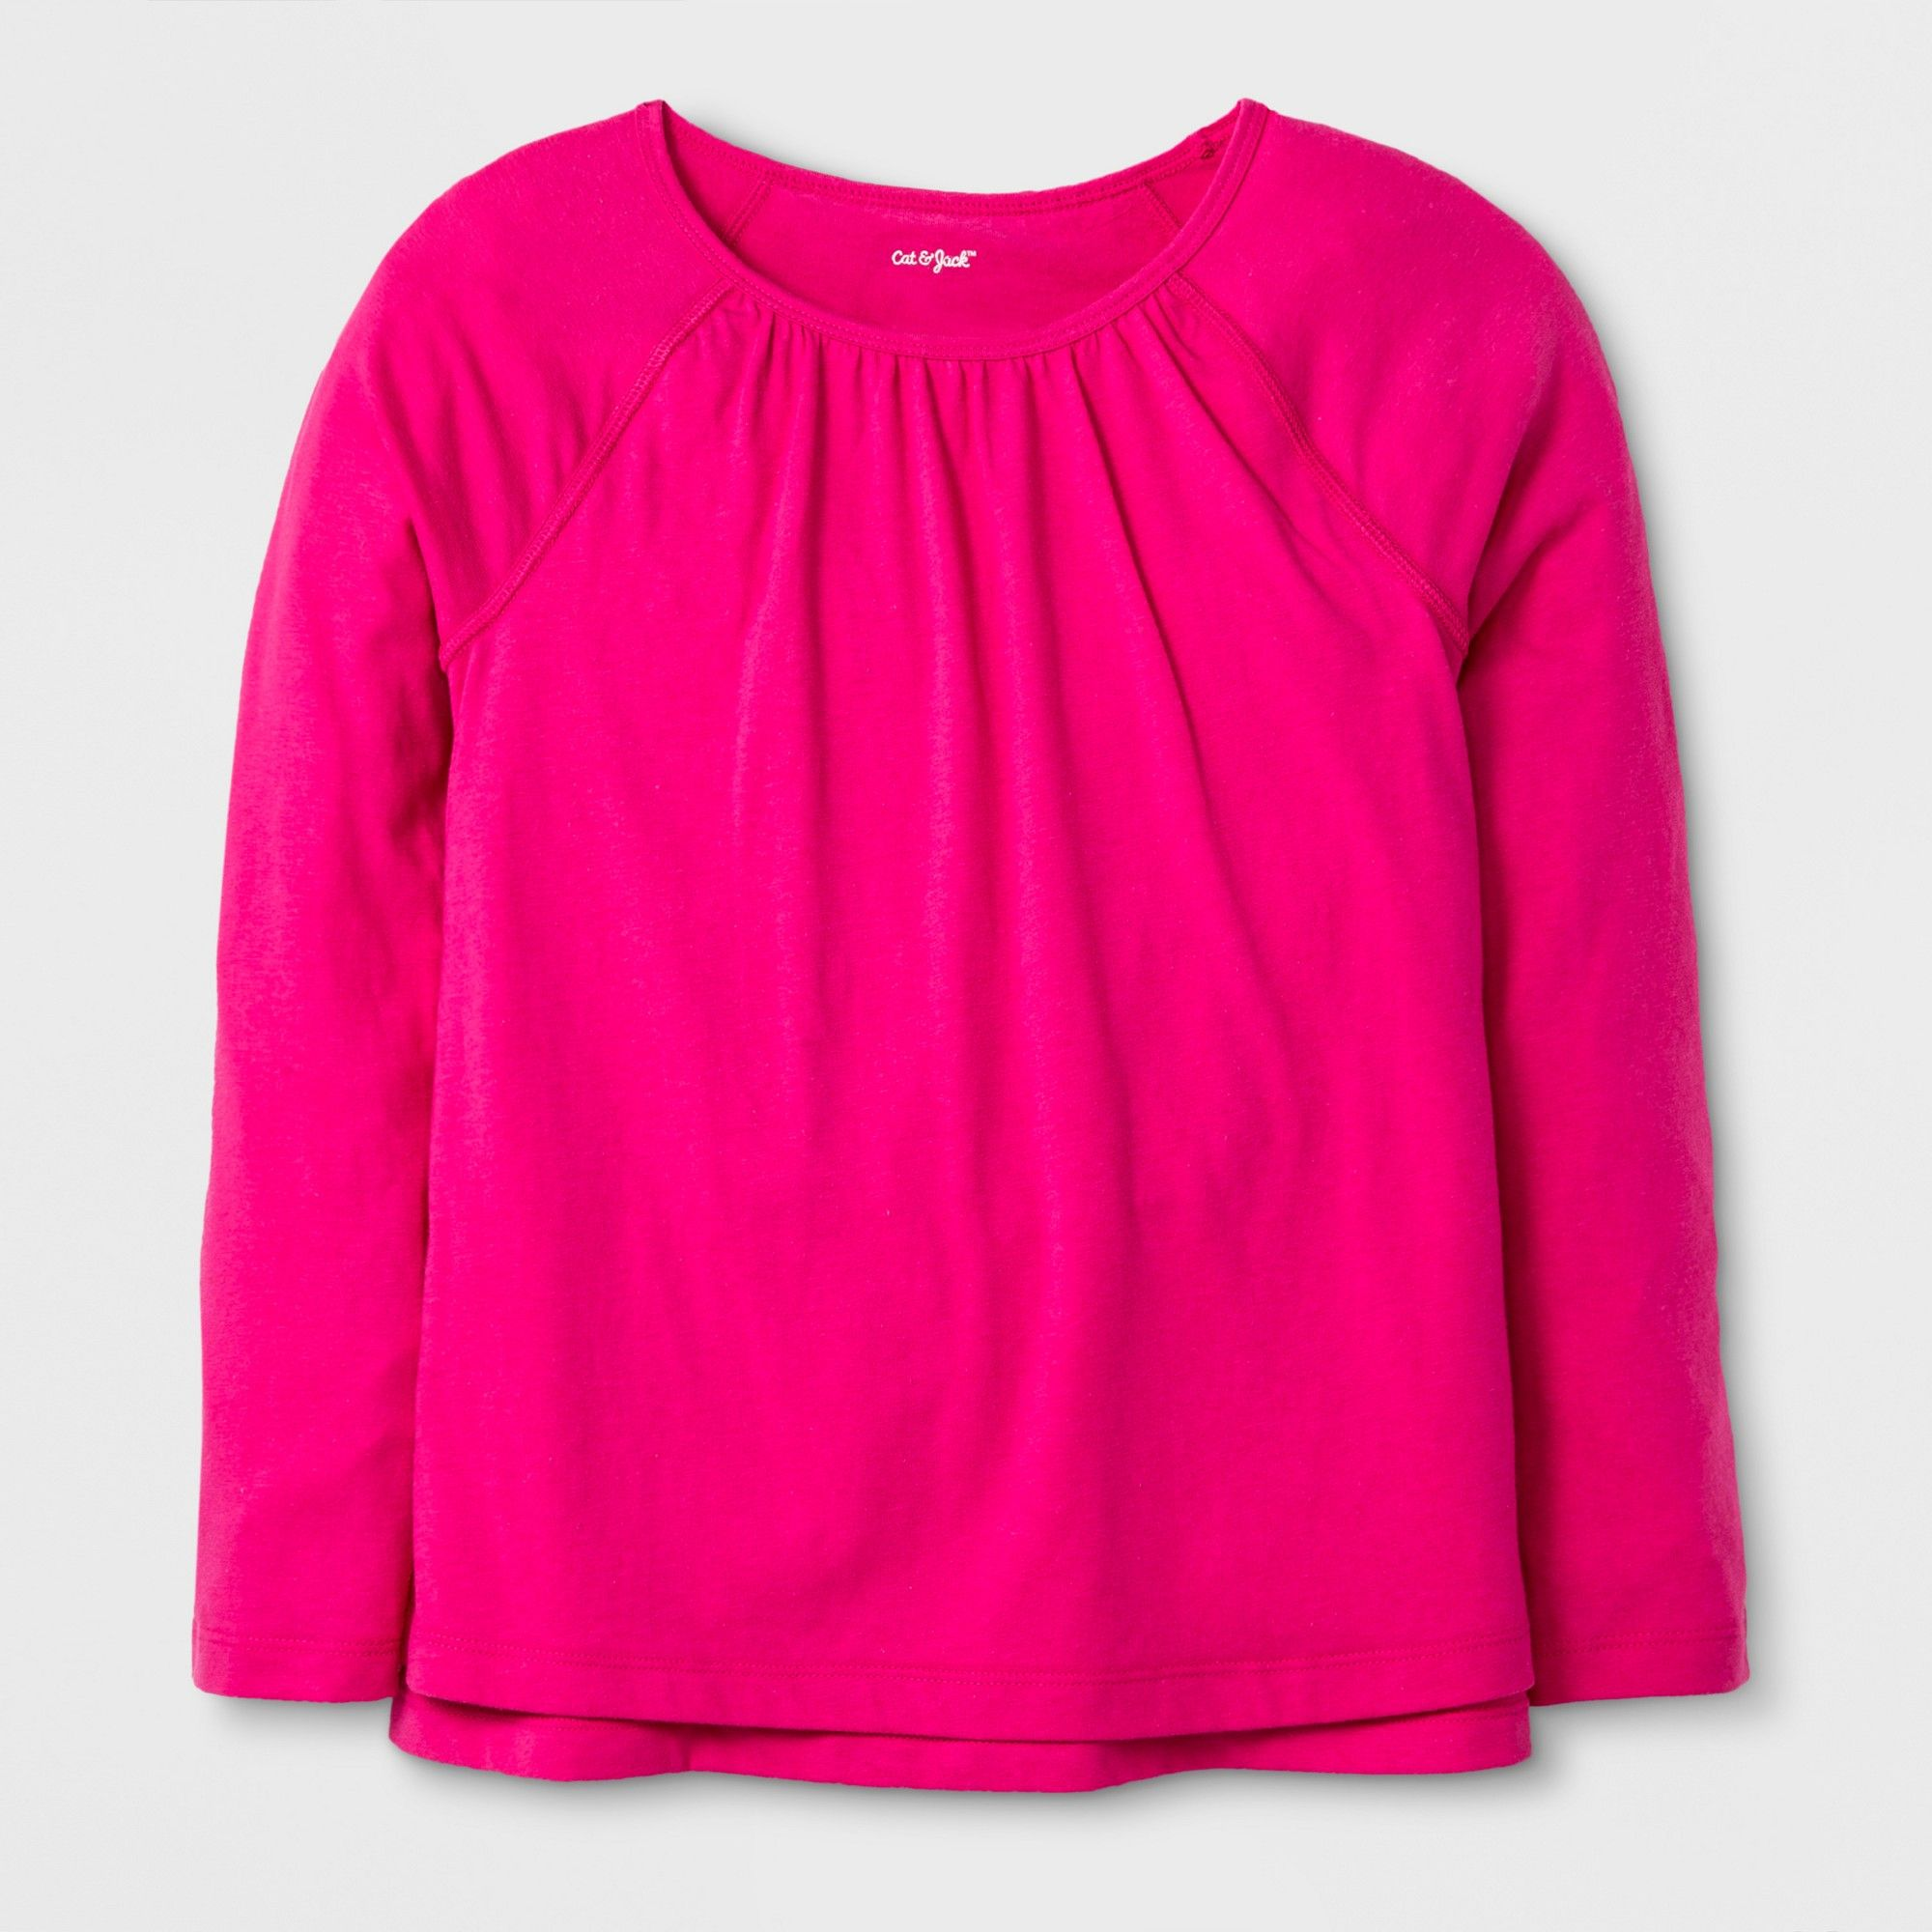 fde5a72f0 Girls' Adaptive Long Sleeve Top - Cat & Jack Pink XS | Products ...